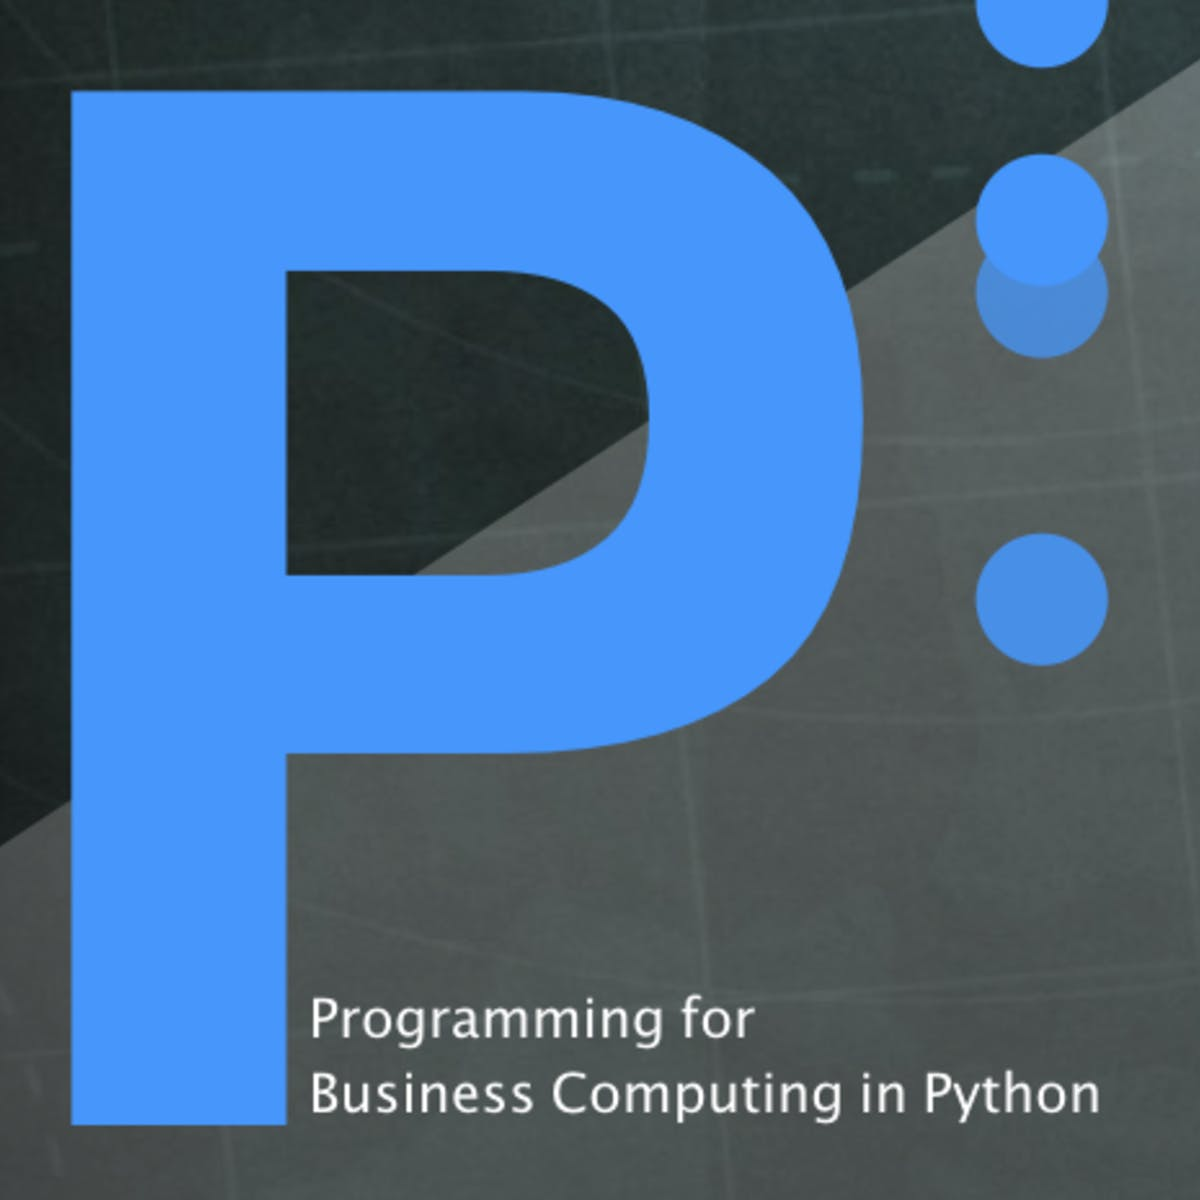 用 Python 做商管程式設計(一)(Programming for Business Computing in Python (1))